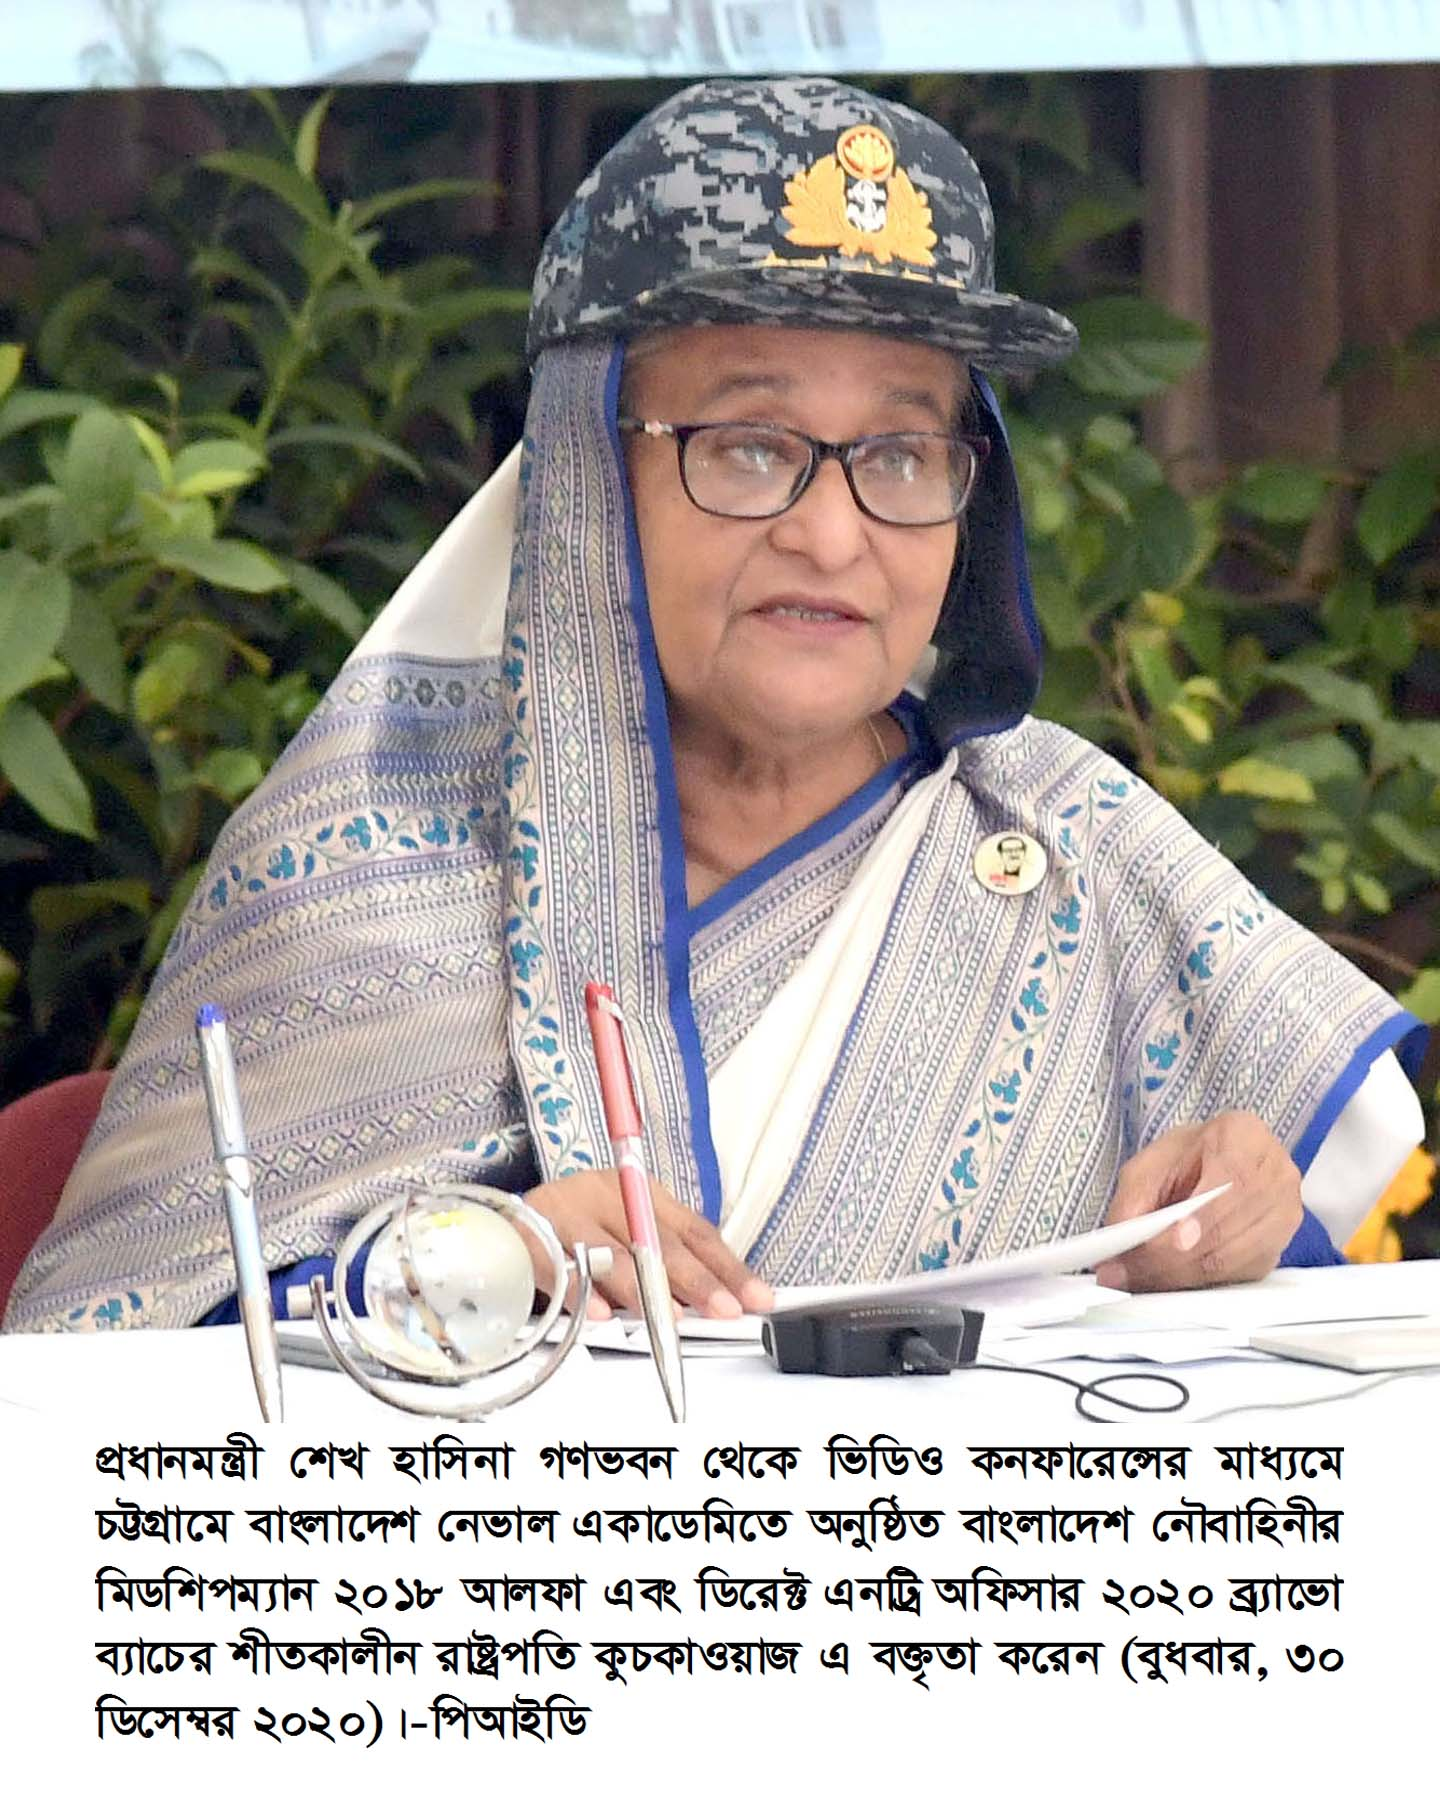 Sheikh Hasina attends special event in Bangladesh